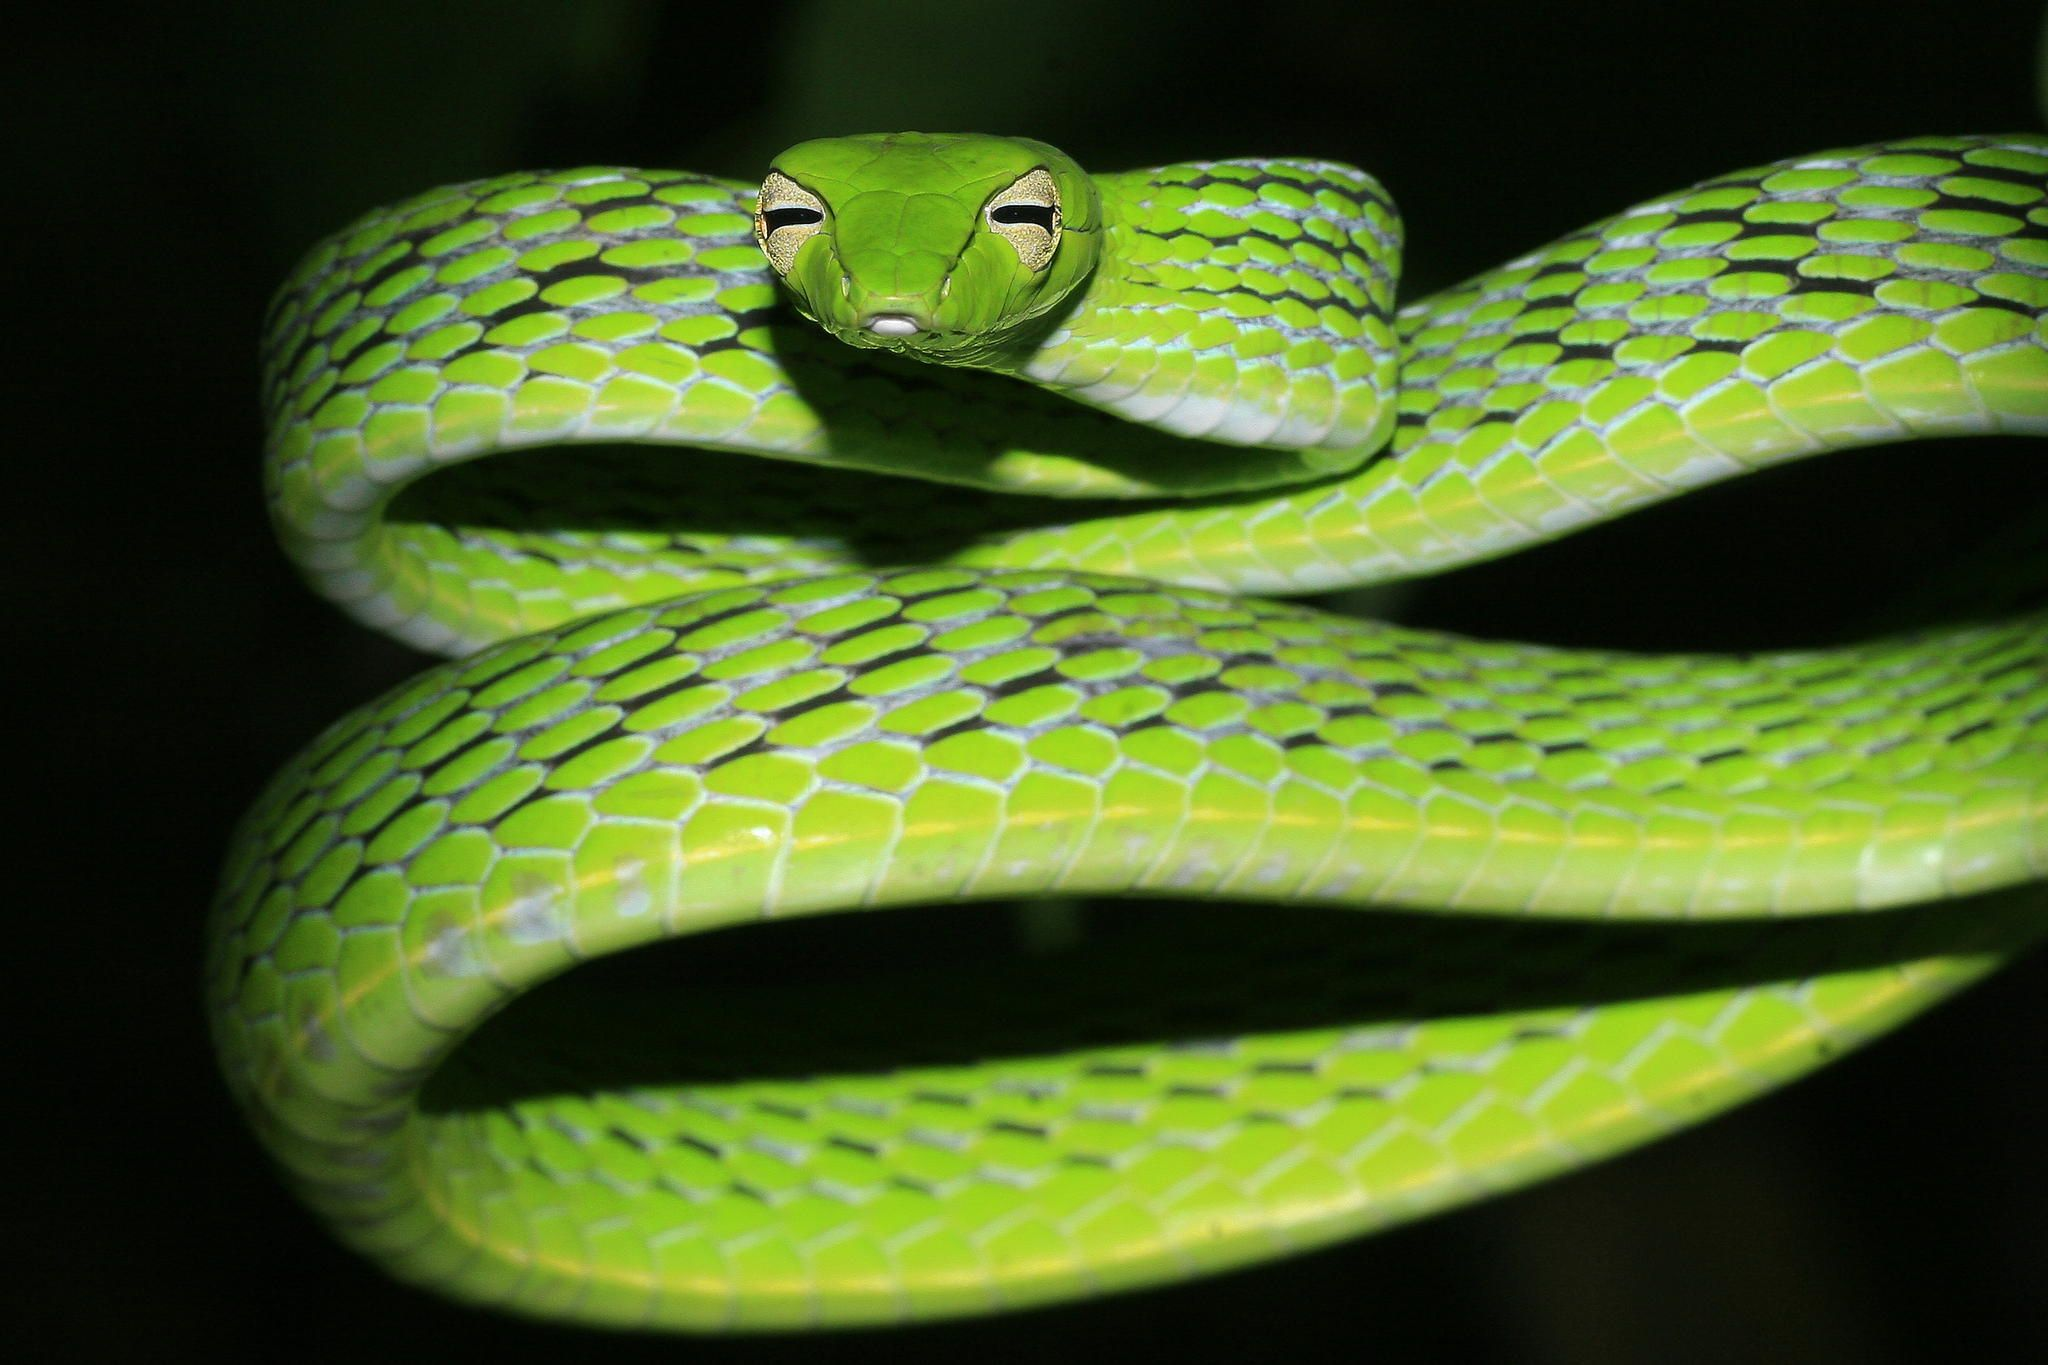 Oriental Whip Snake - One of the most common snakes found in